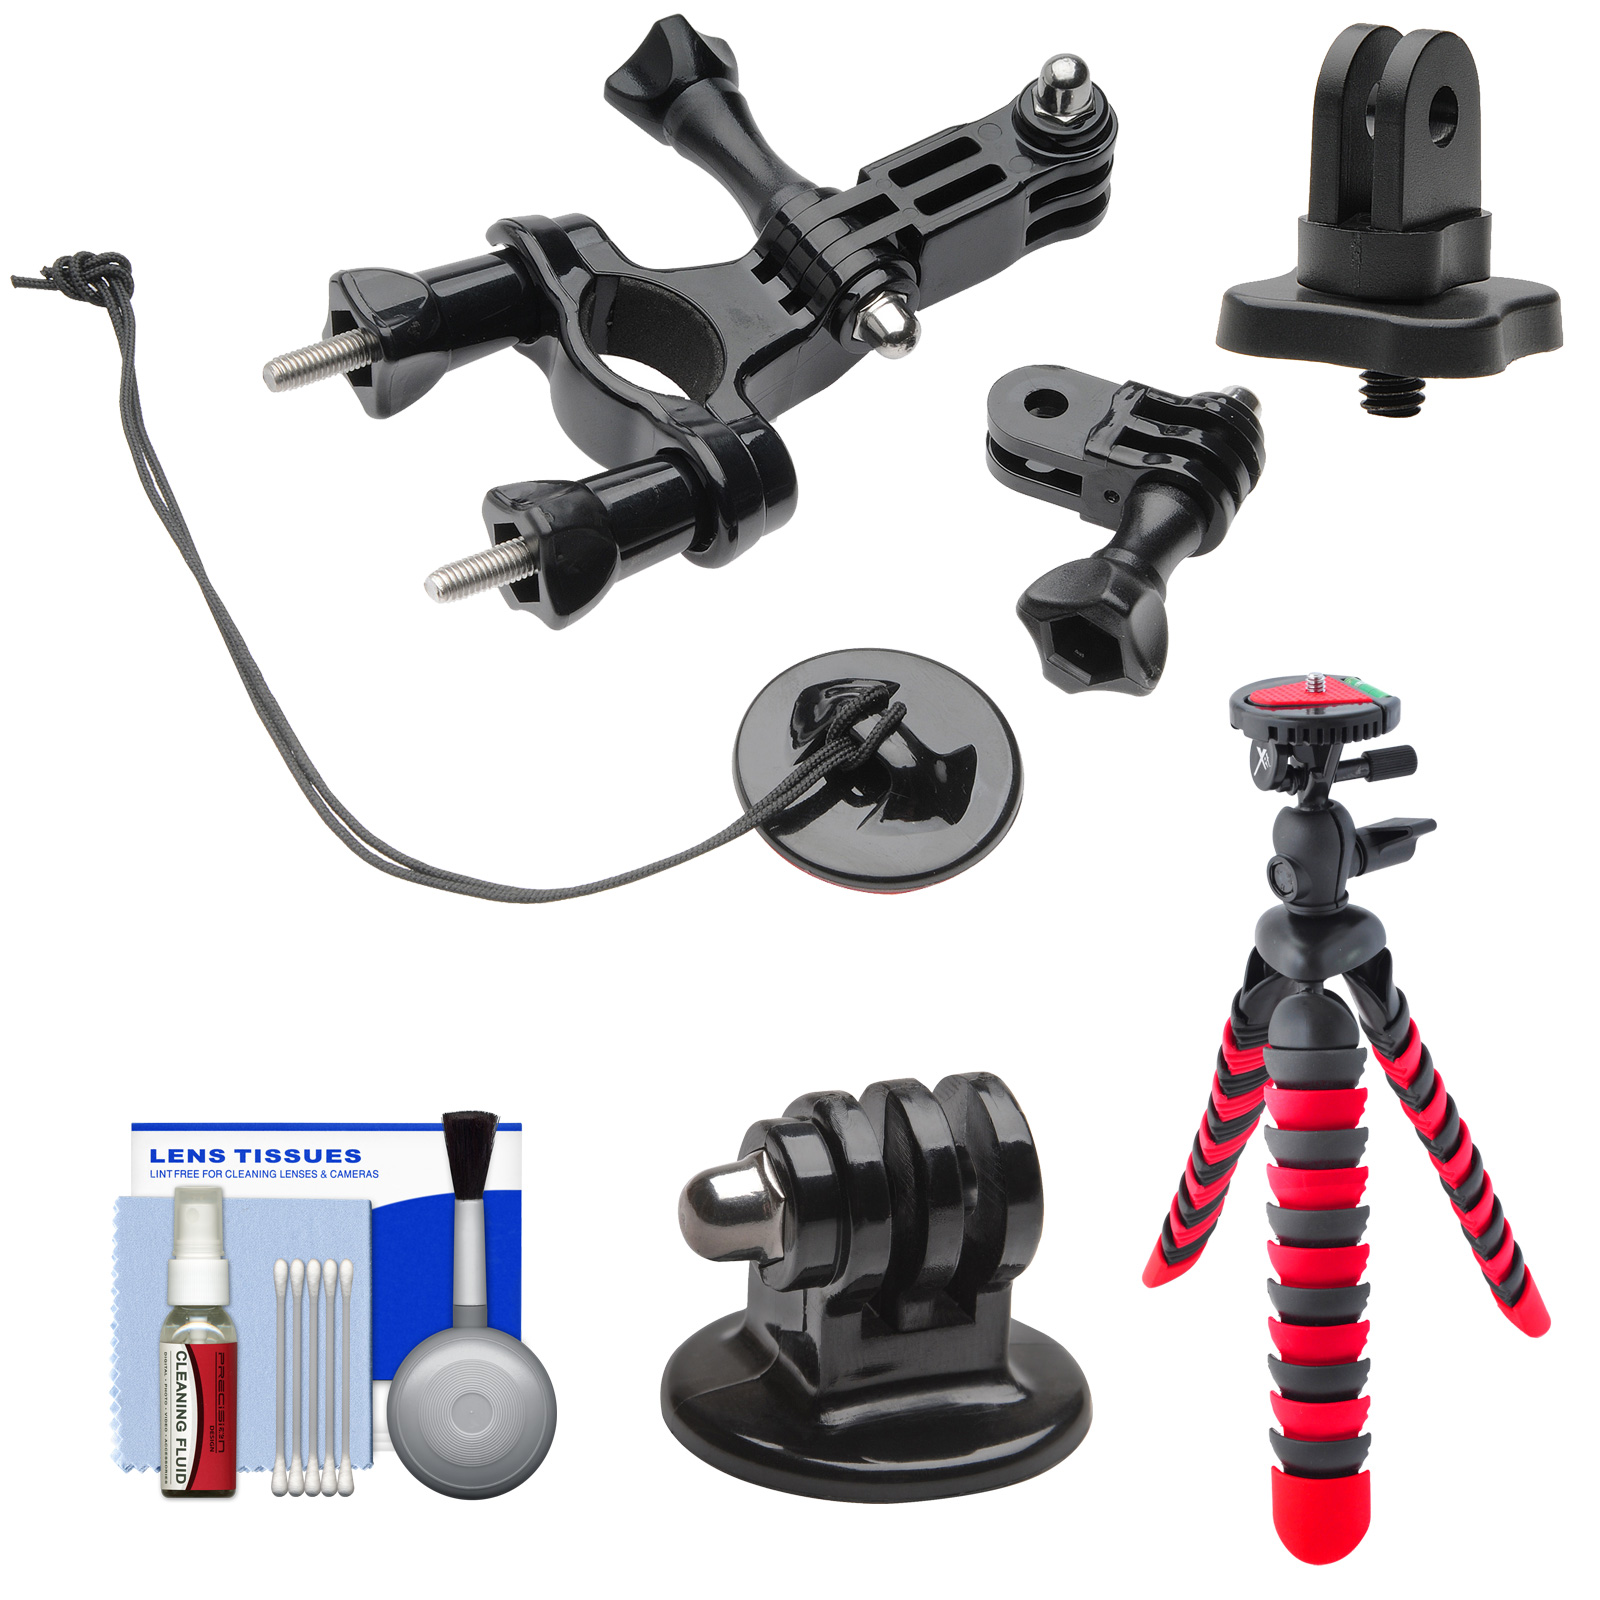 "PRO-mounts PMGP02 Bike/Handlebar Tube Mount with 1/4"" Thread Adapter + Flex Tripod Kit for GoPro HERO, Sony Action Cam, Drift, Veho Muvi, and most Cameras"